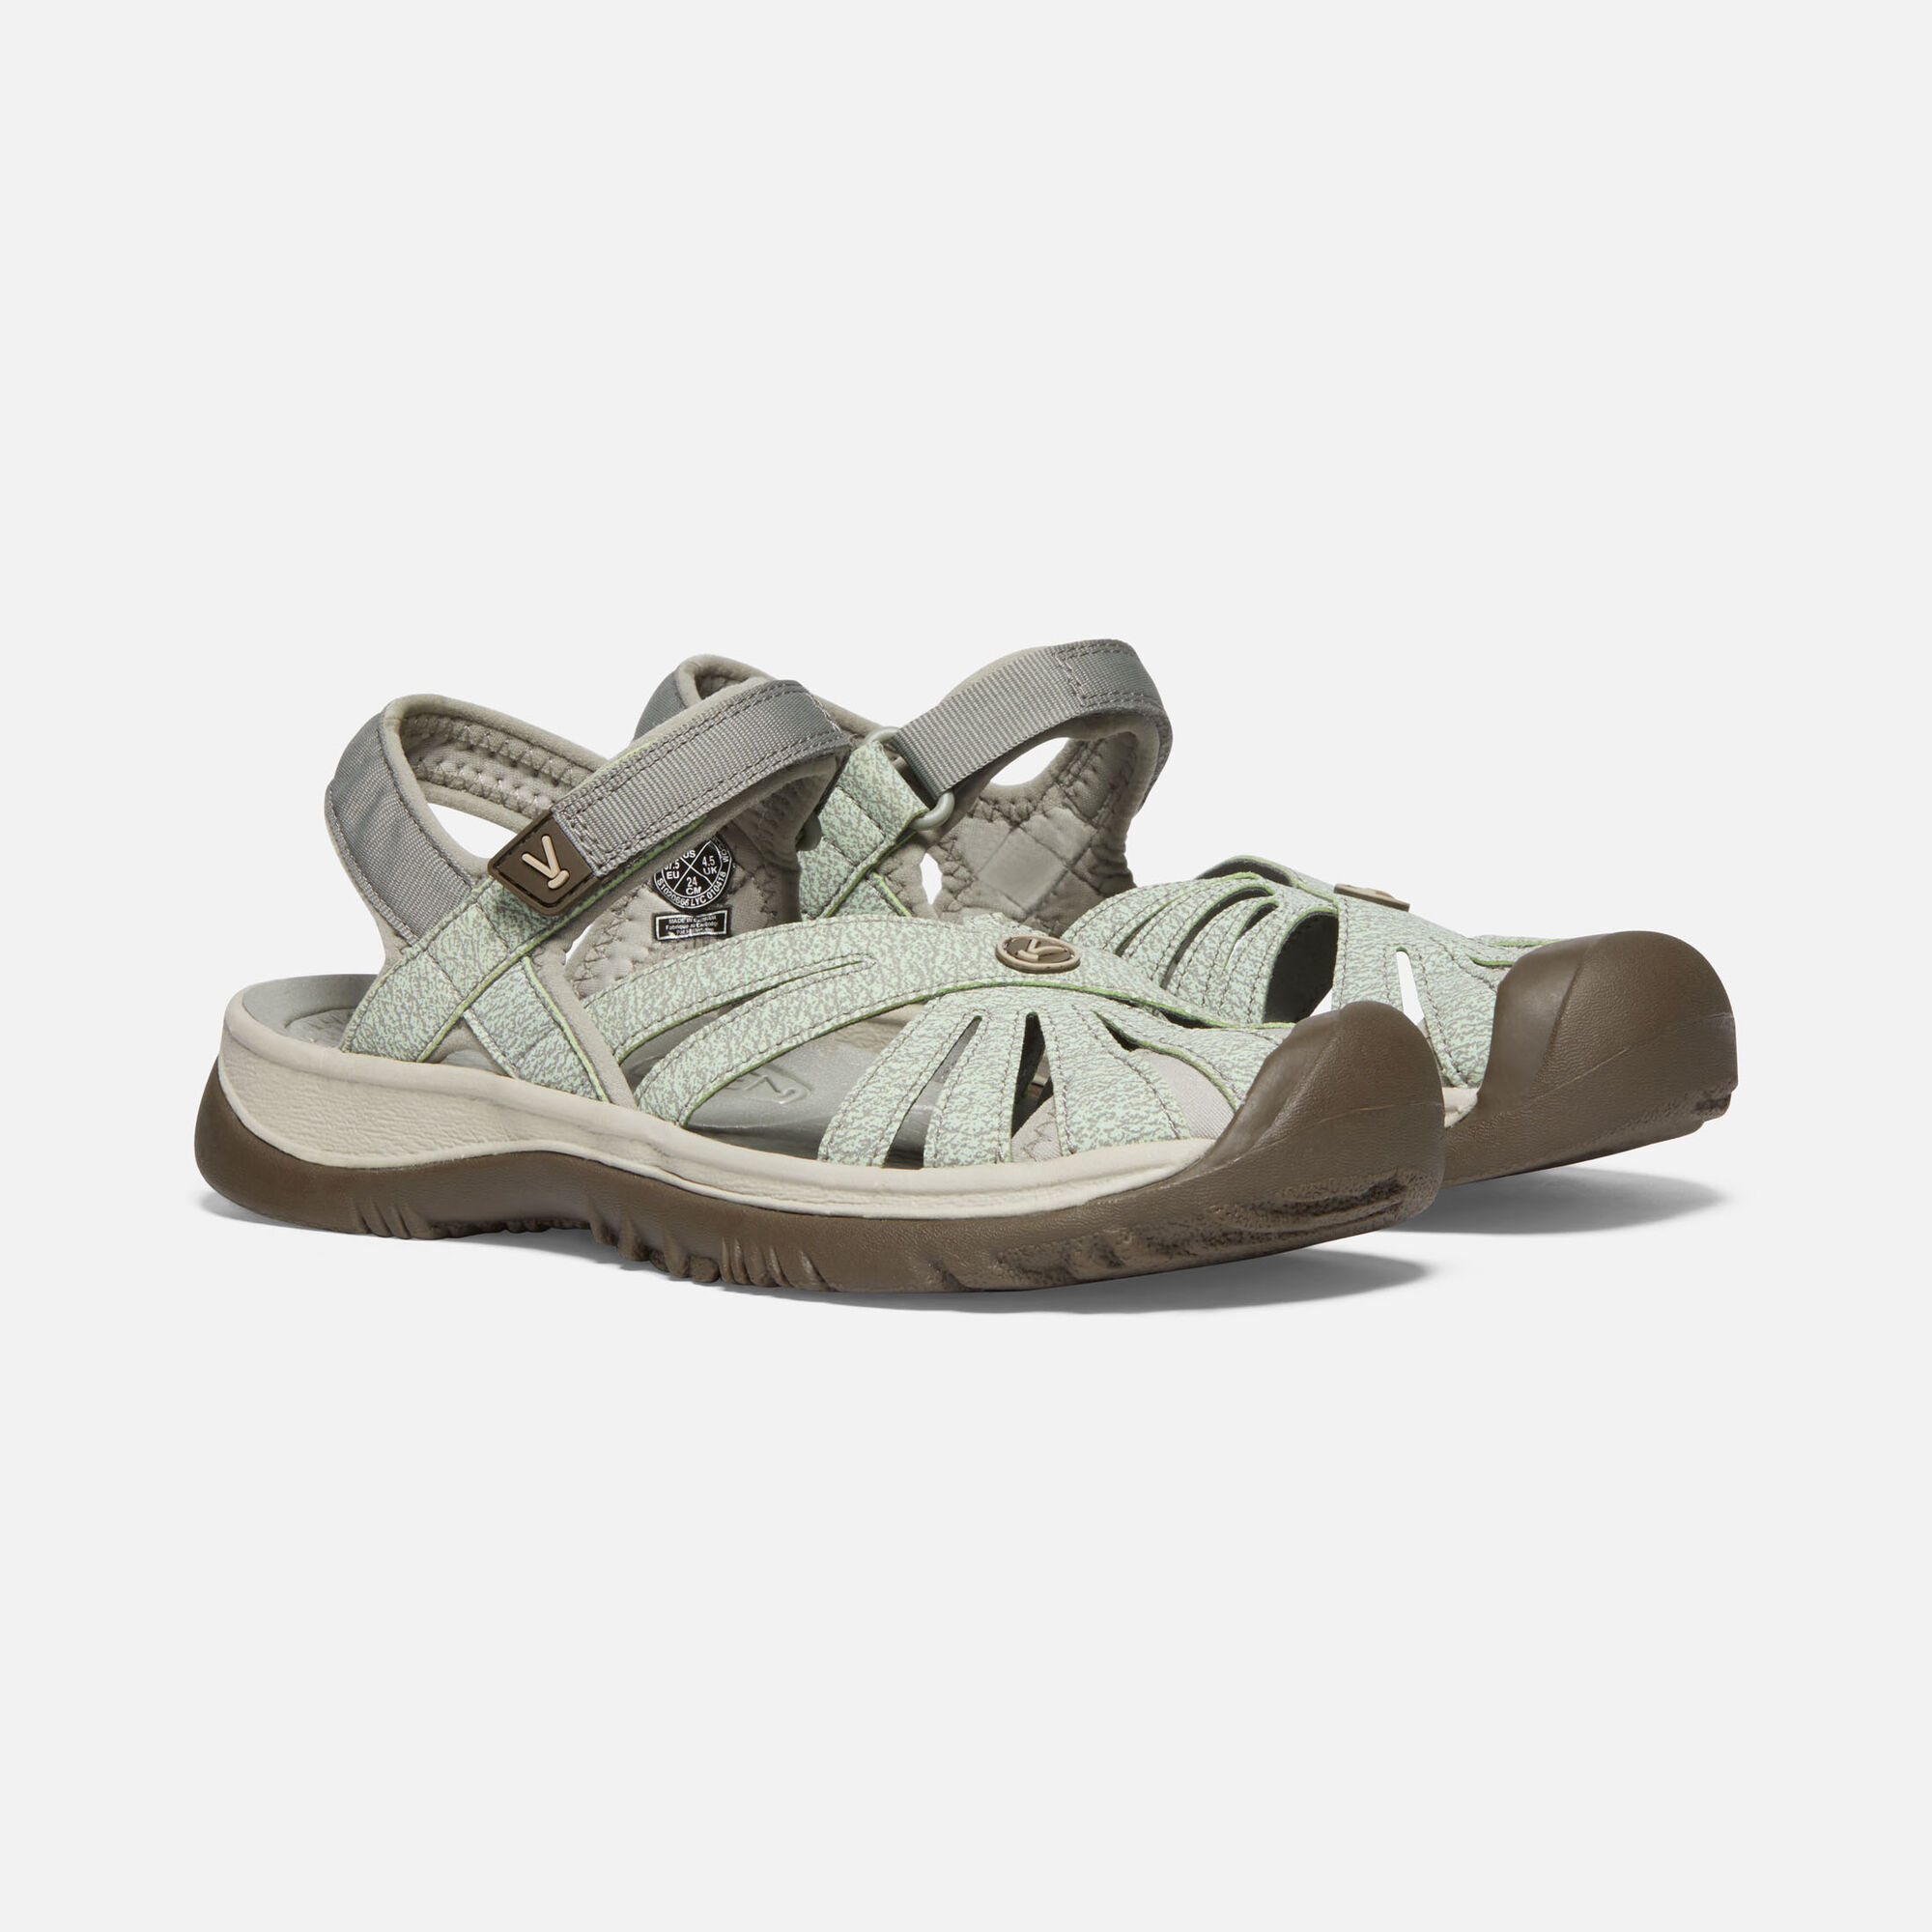 22e2649b1f1 Women s Rose Sandal in LILY PAD CELADON - small view.